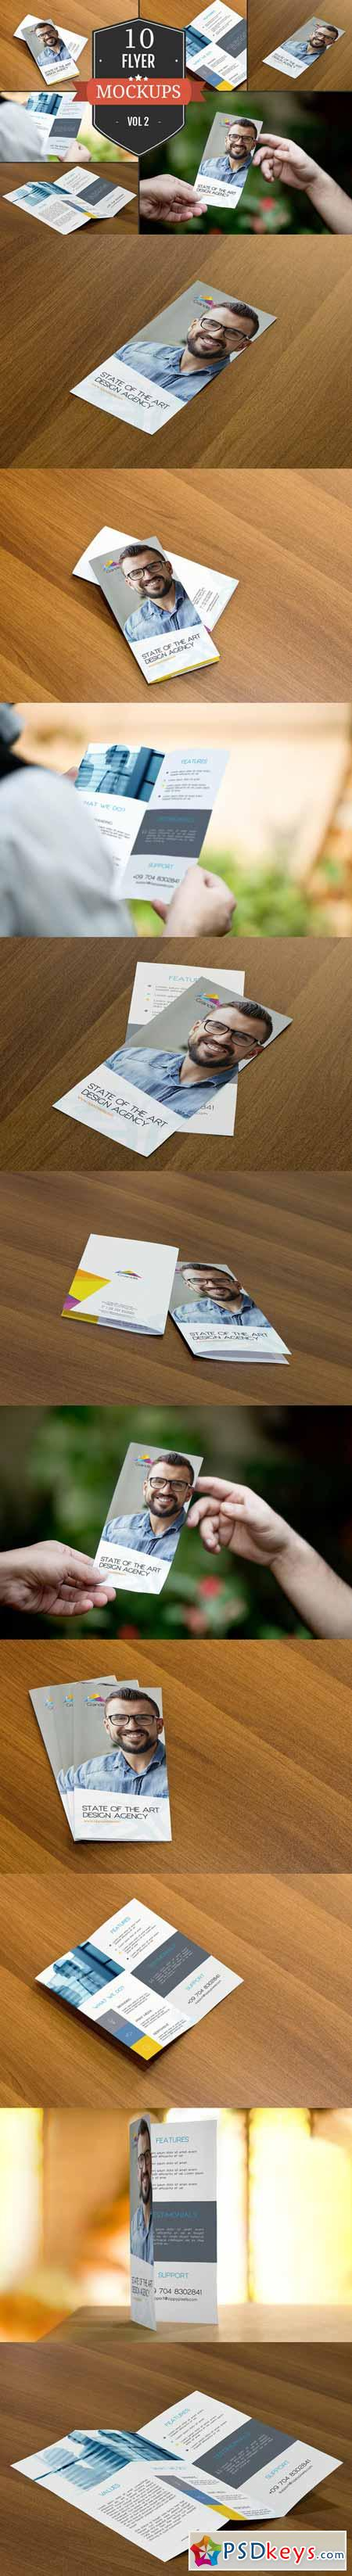 Beautiful Flyer Mockup PSDs Vol. 2 351443